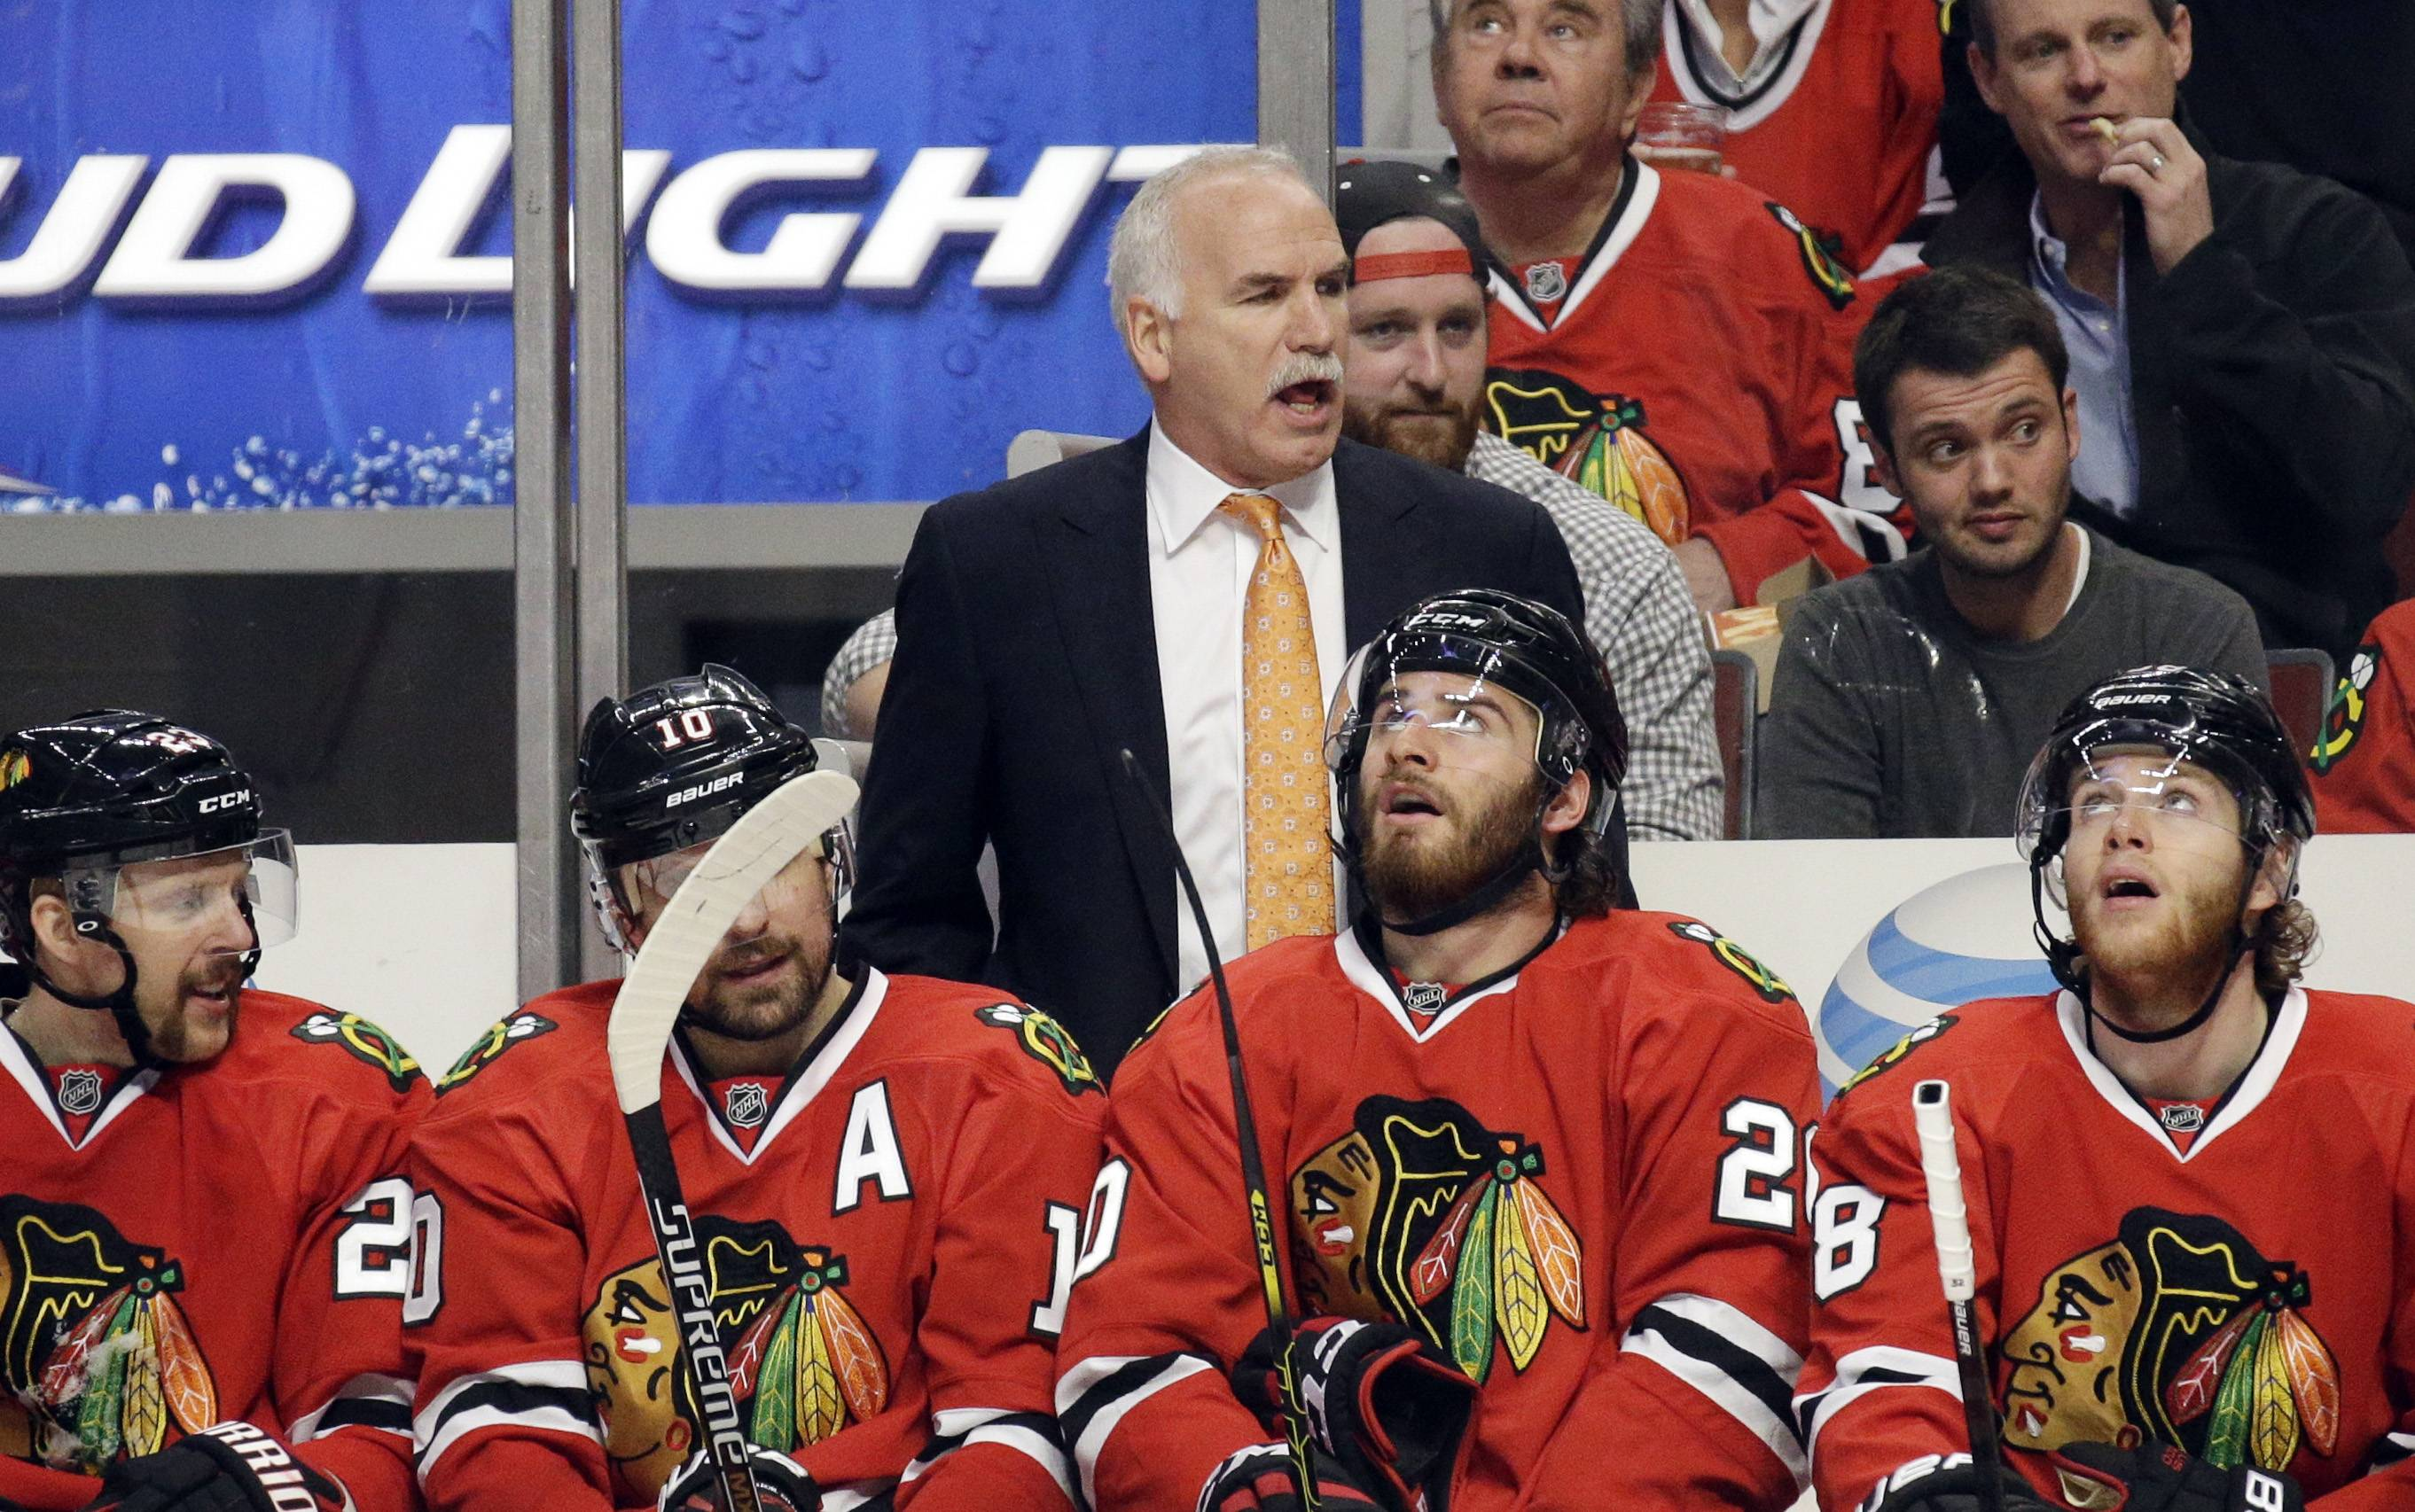 Blackhawks head coach Joel Quenneville directs his team during the second period of Game 5 Wednesday night at the United Center.